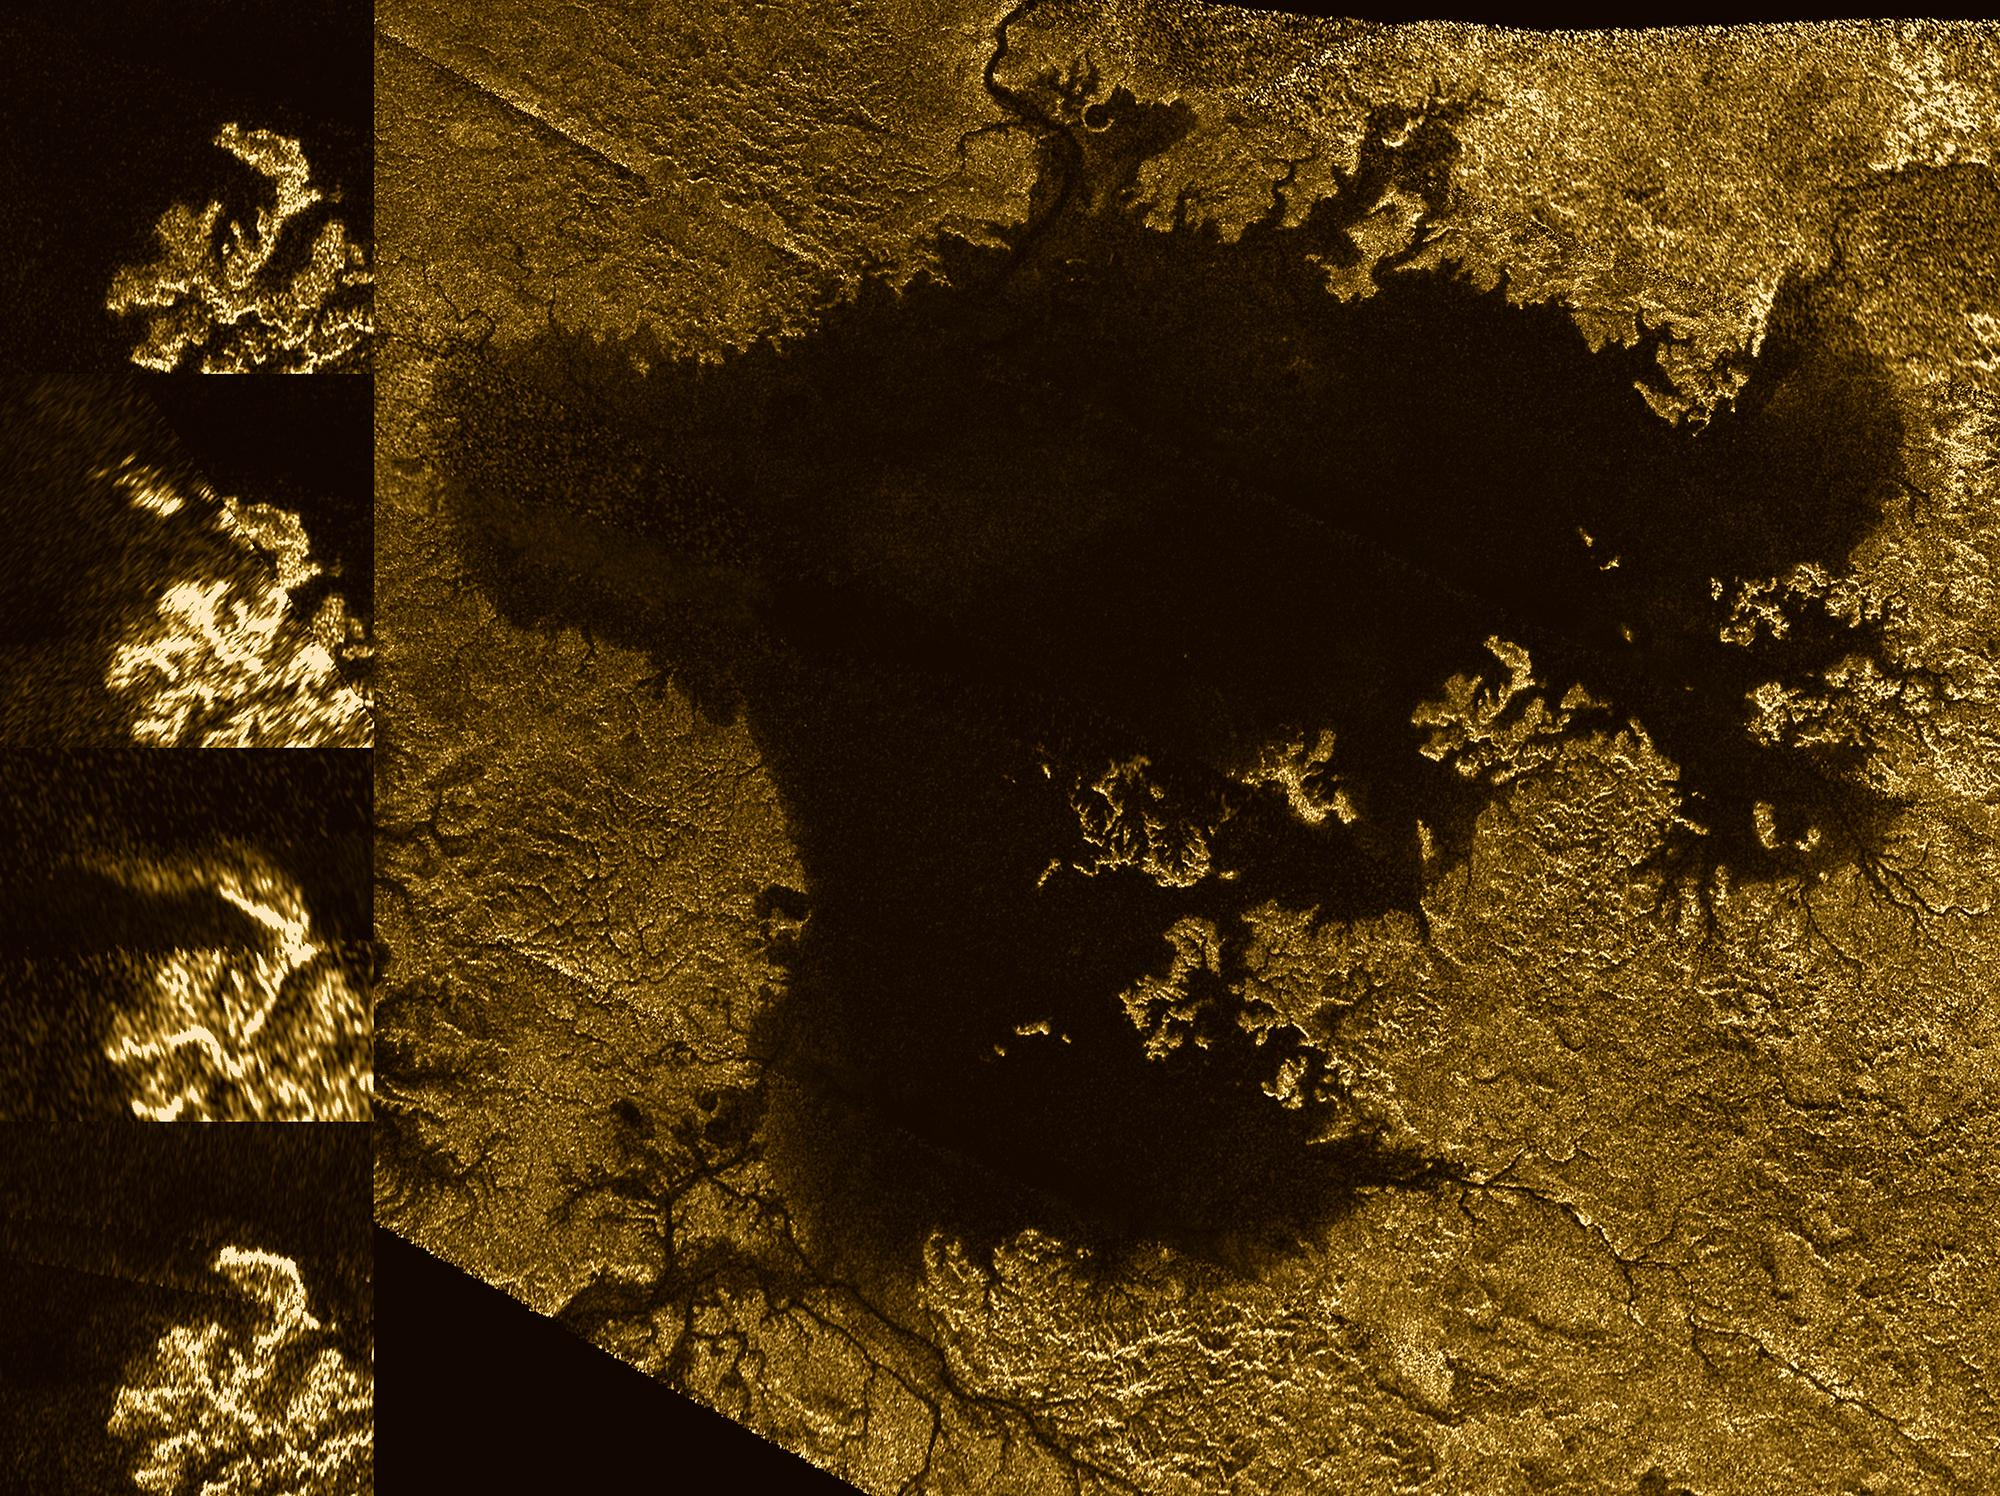 Transient Feature on Saturn Moon, Titan